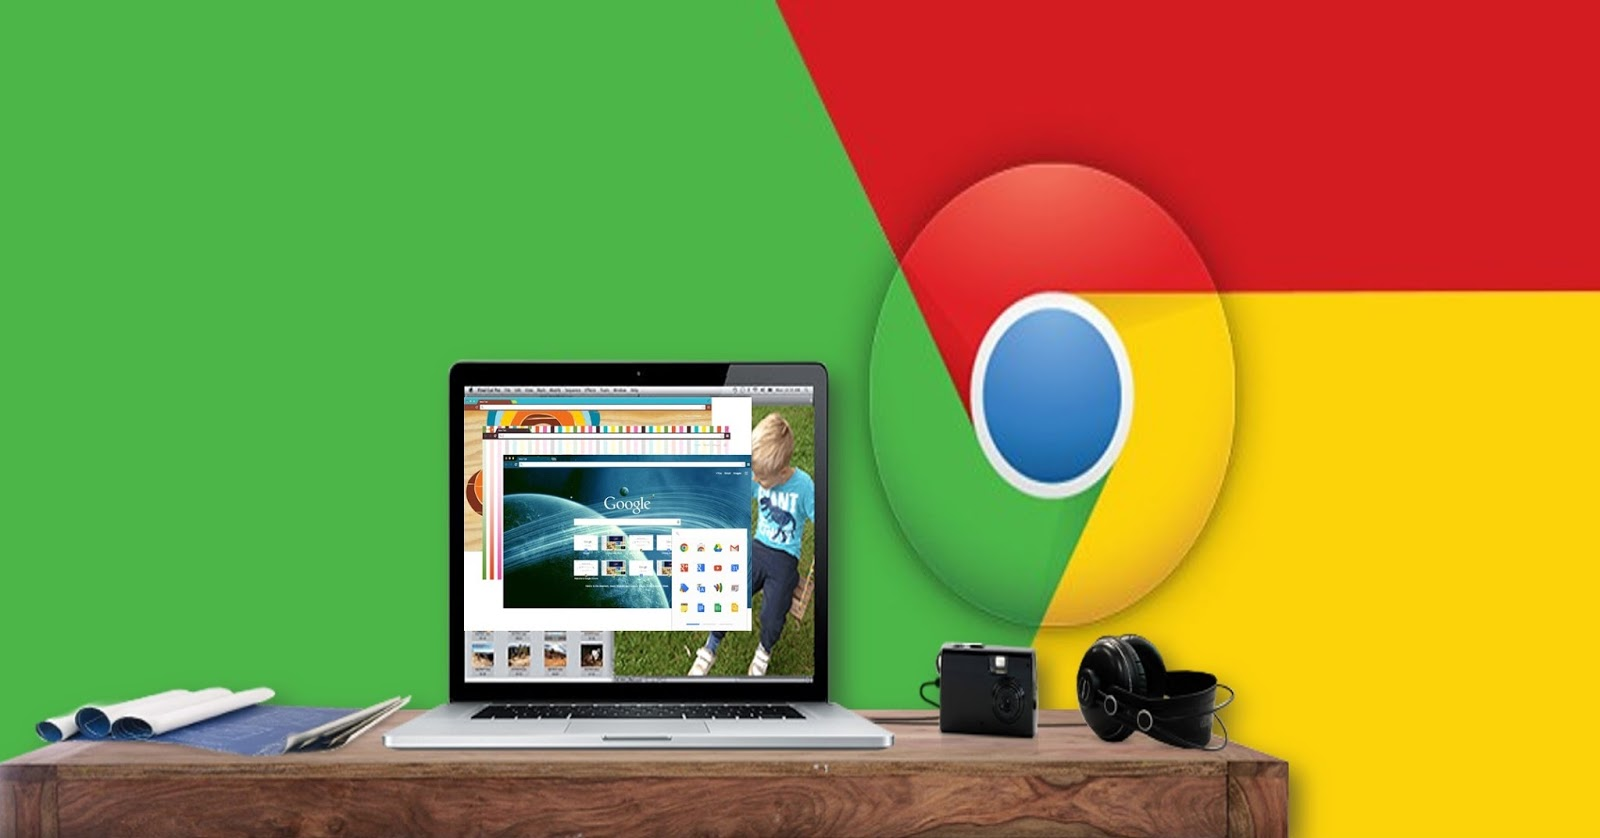 http://softdirec.blogspot.com/2015/11/google-chrome.html